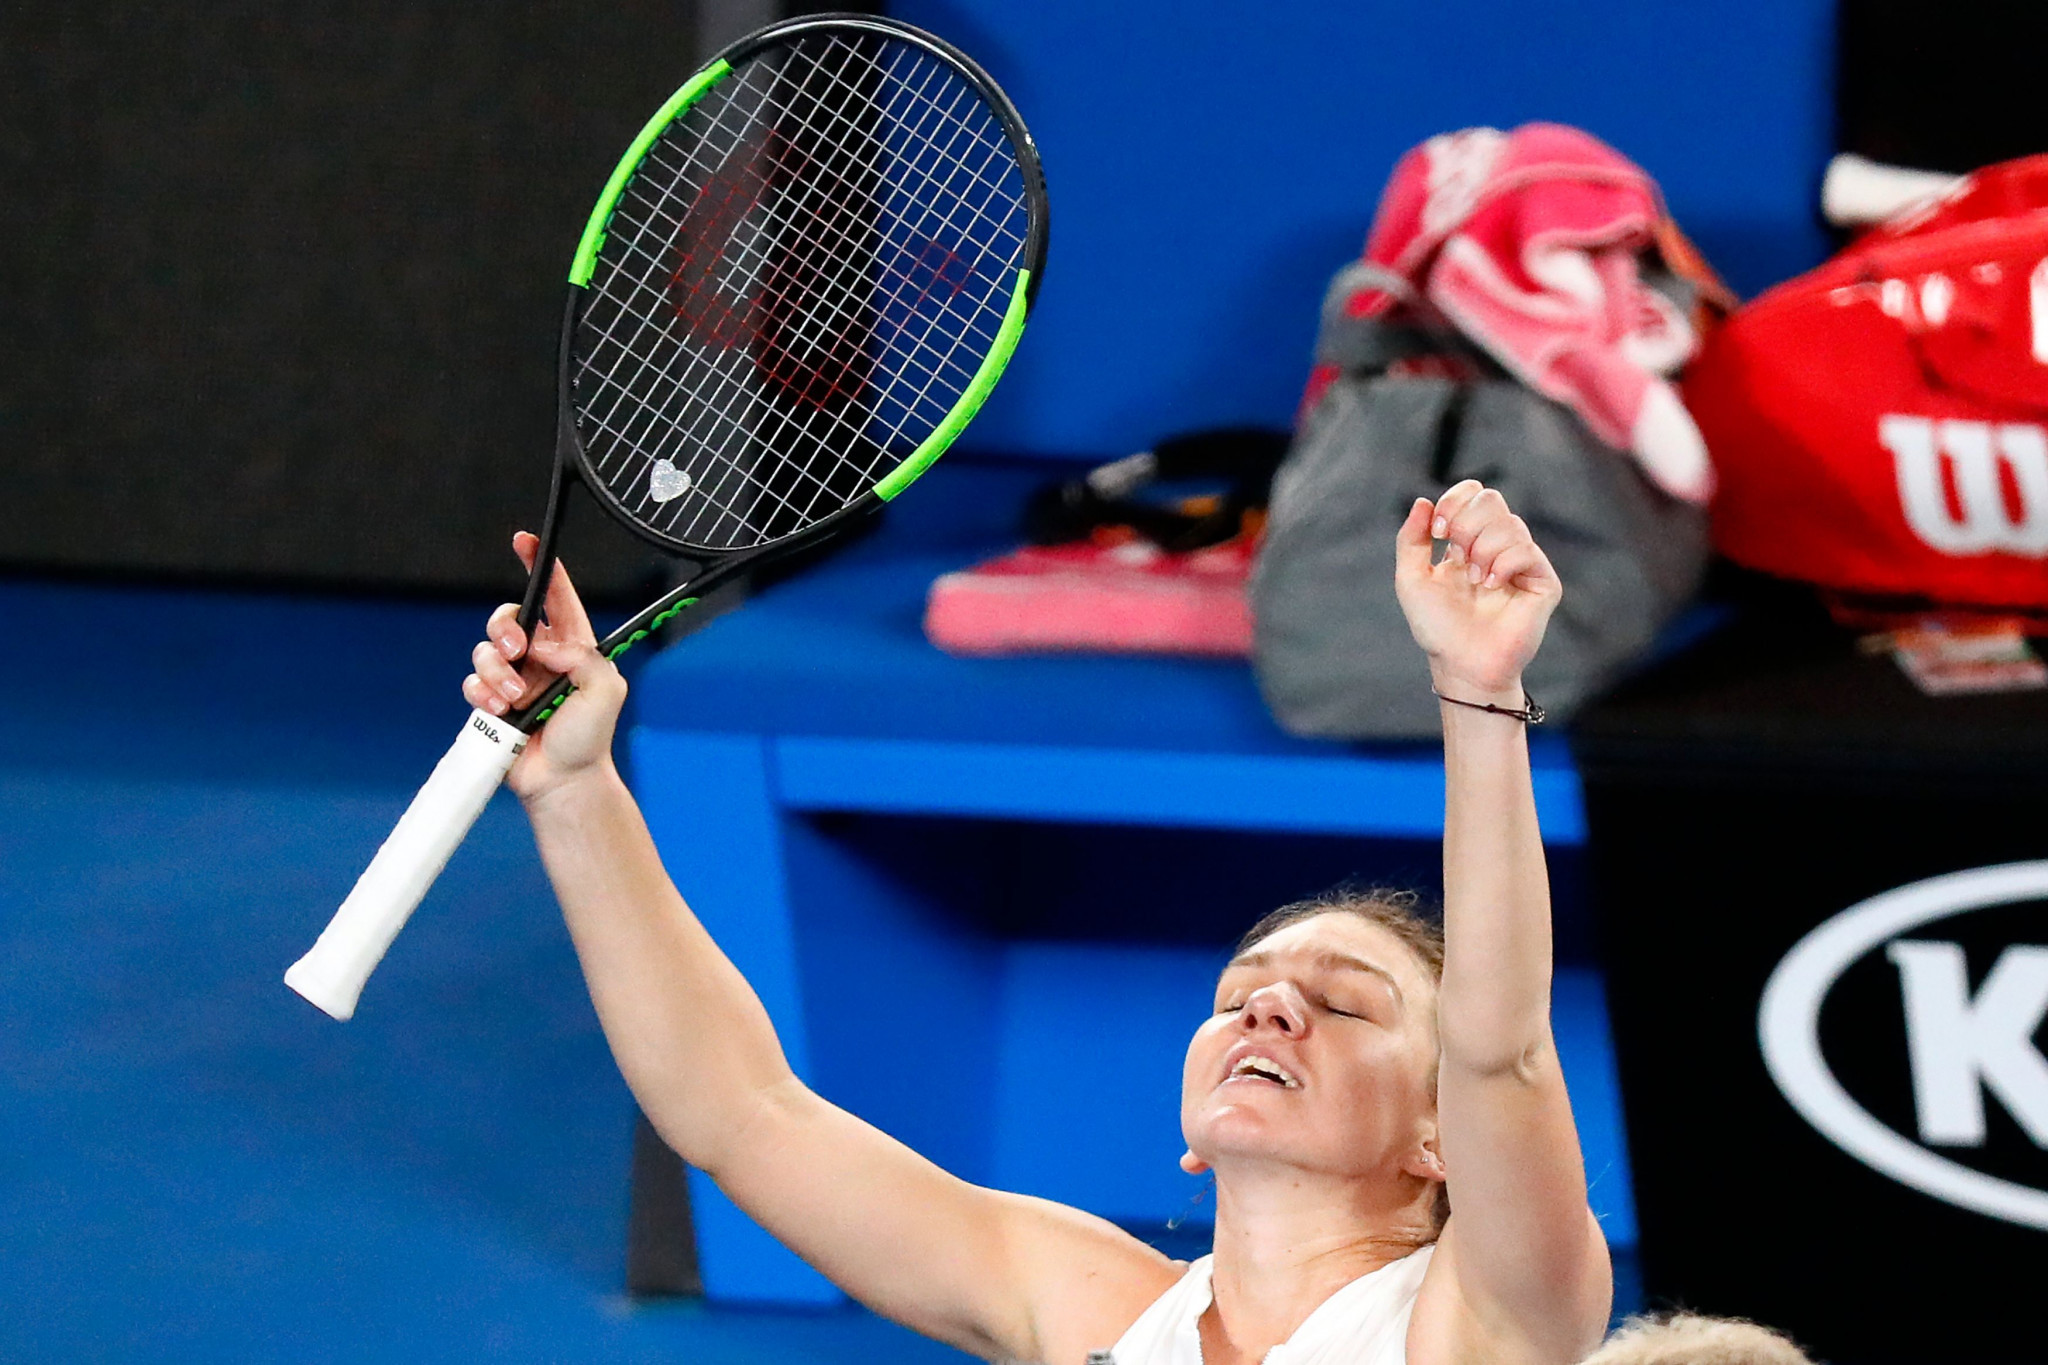 Women's world number one Simona Halep survived a scare as she needed three sets to get past Sofia Kenin of the United States ©Getty Images